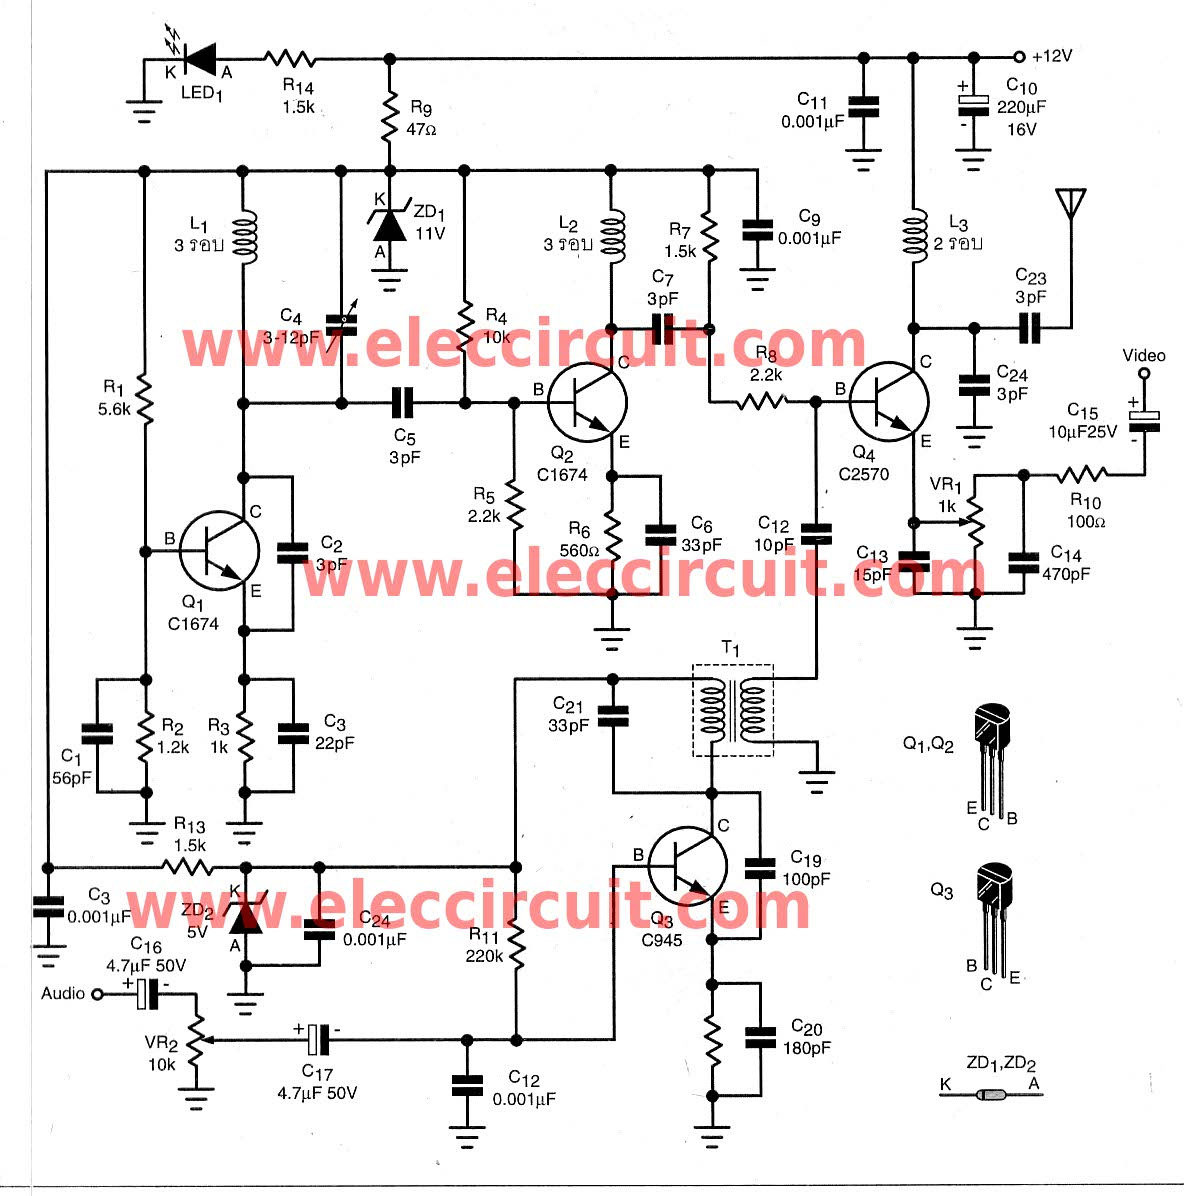 DIY The wireless video & audio signal sender circuit - schematic